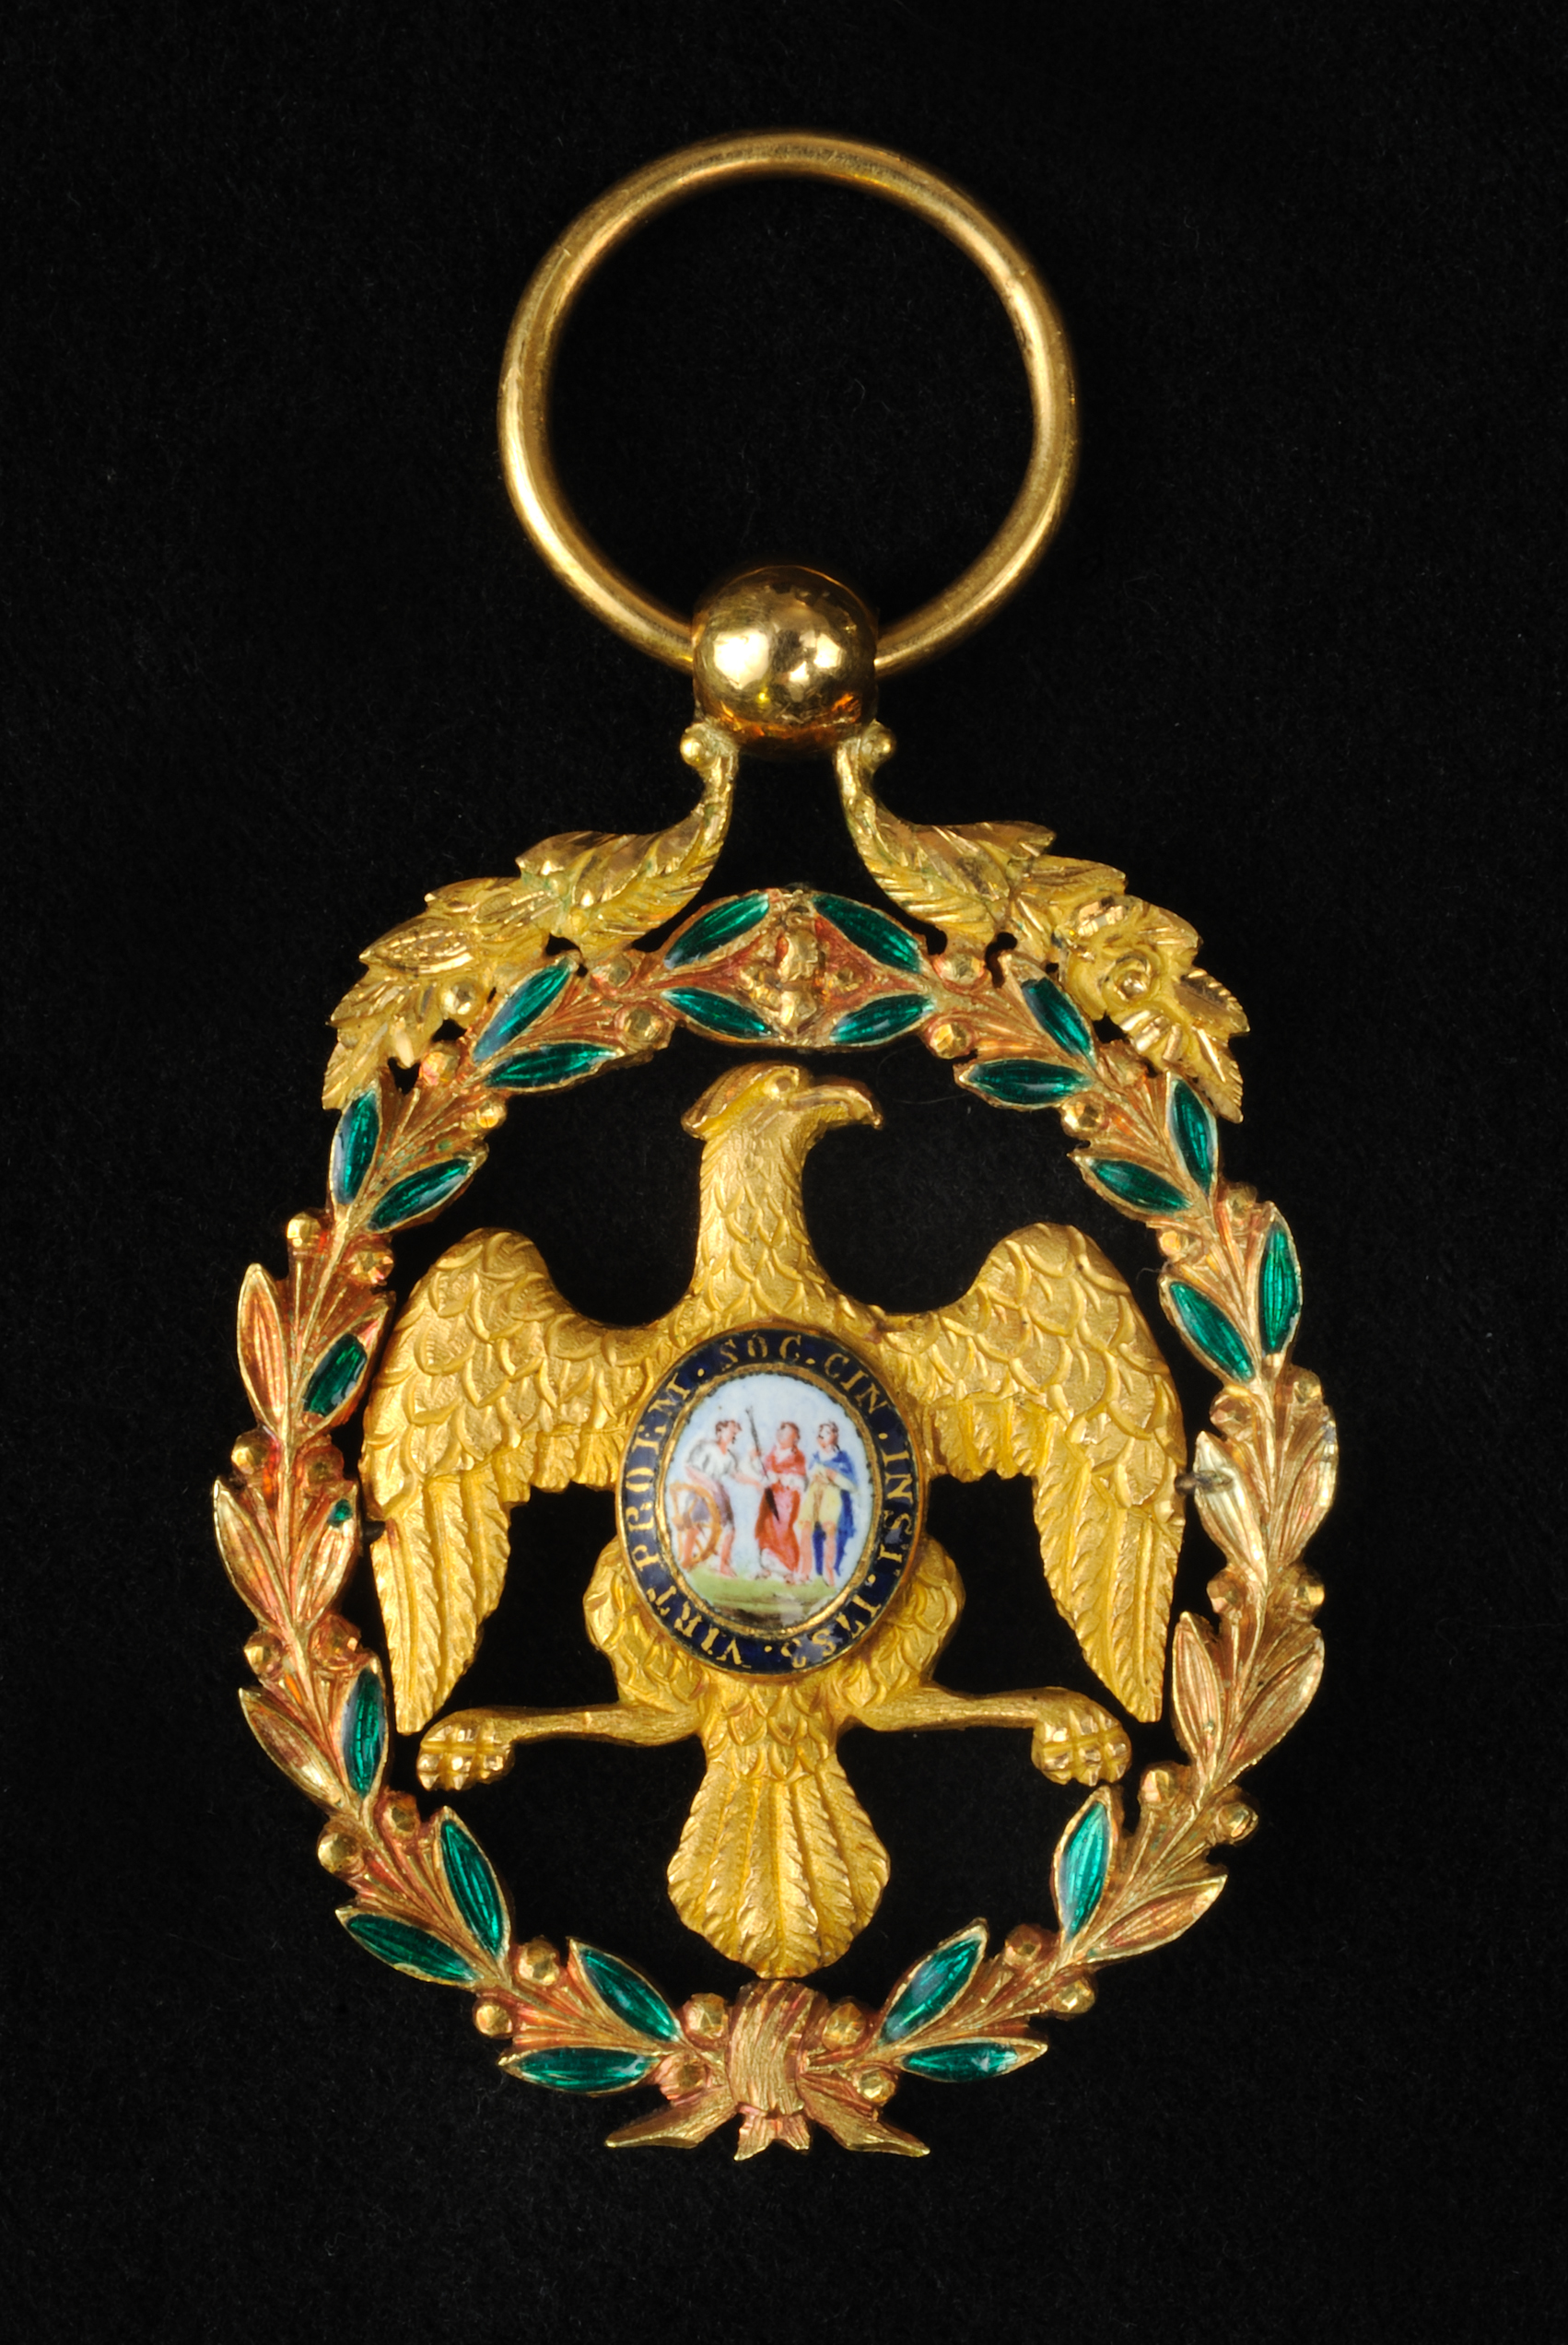 Replica Lafayette Society of the Cincinnati insignia, ca. 1830-1832